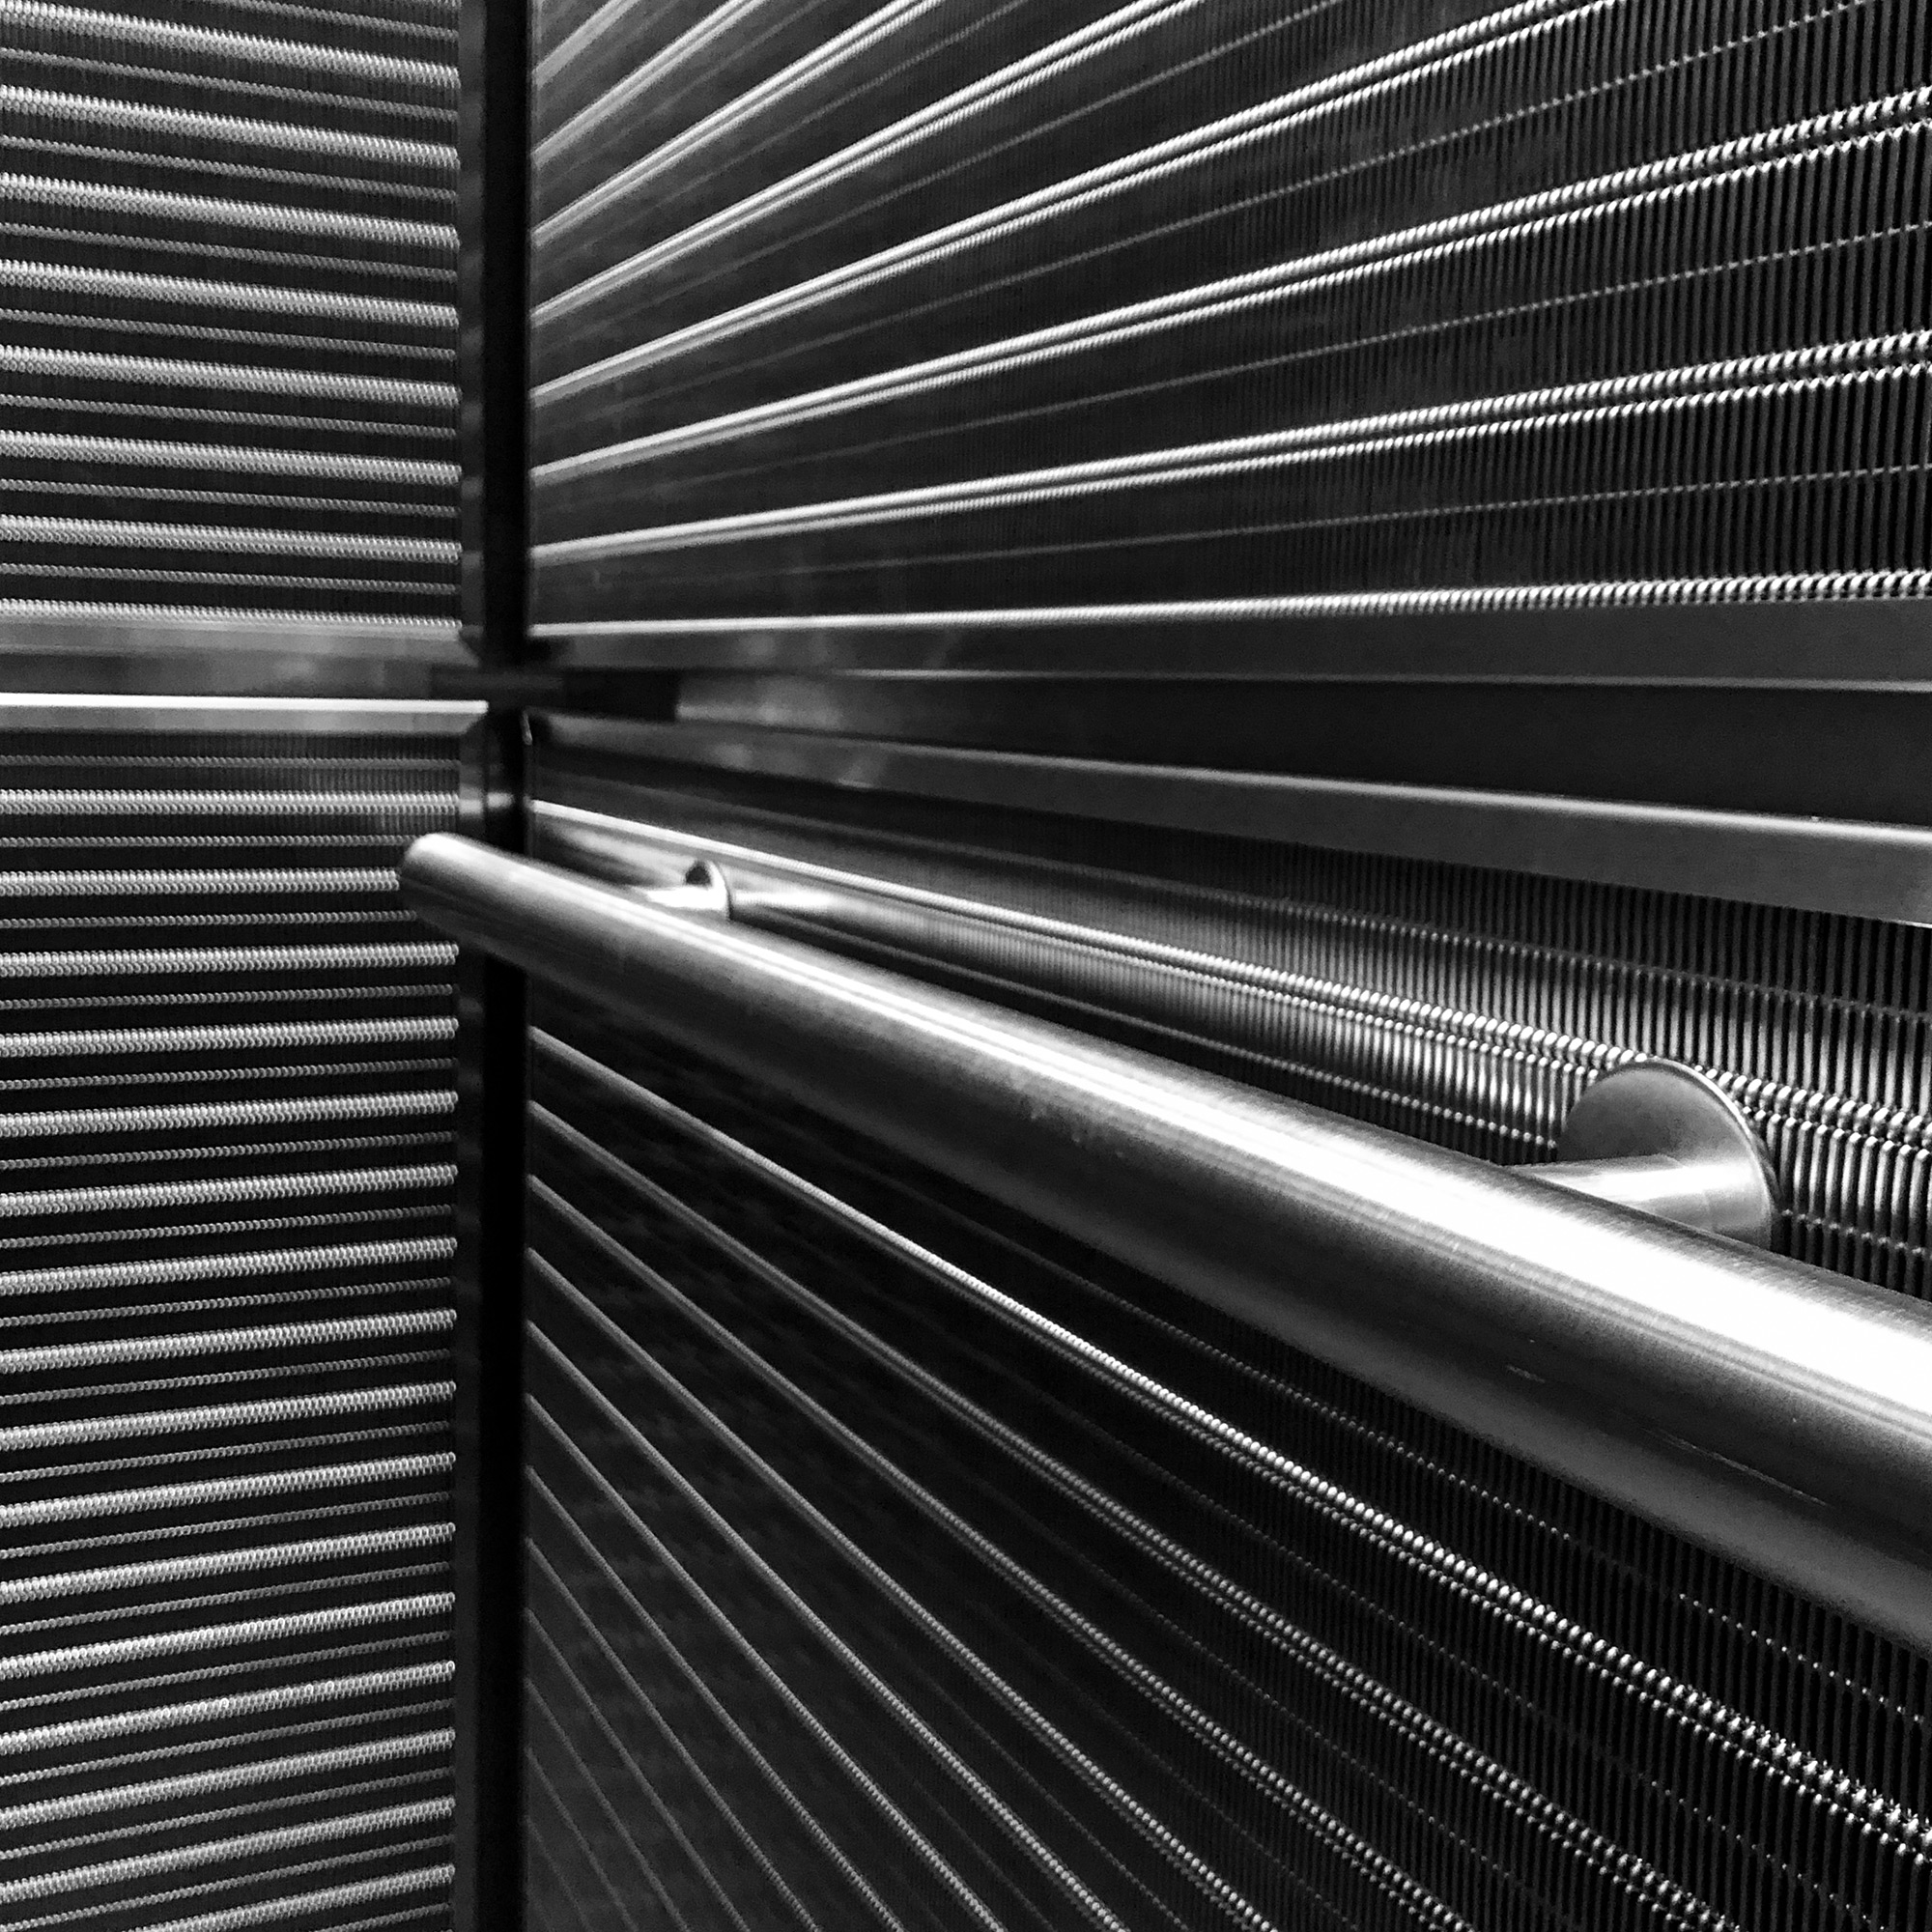 The elevators at the Avalon in Newton Highlands utilizes Banker Wire's DF-6 in Stainless Steel as elevator wall cladding.